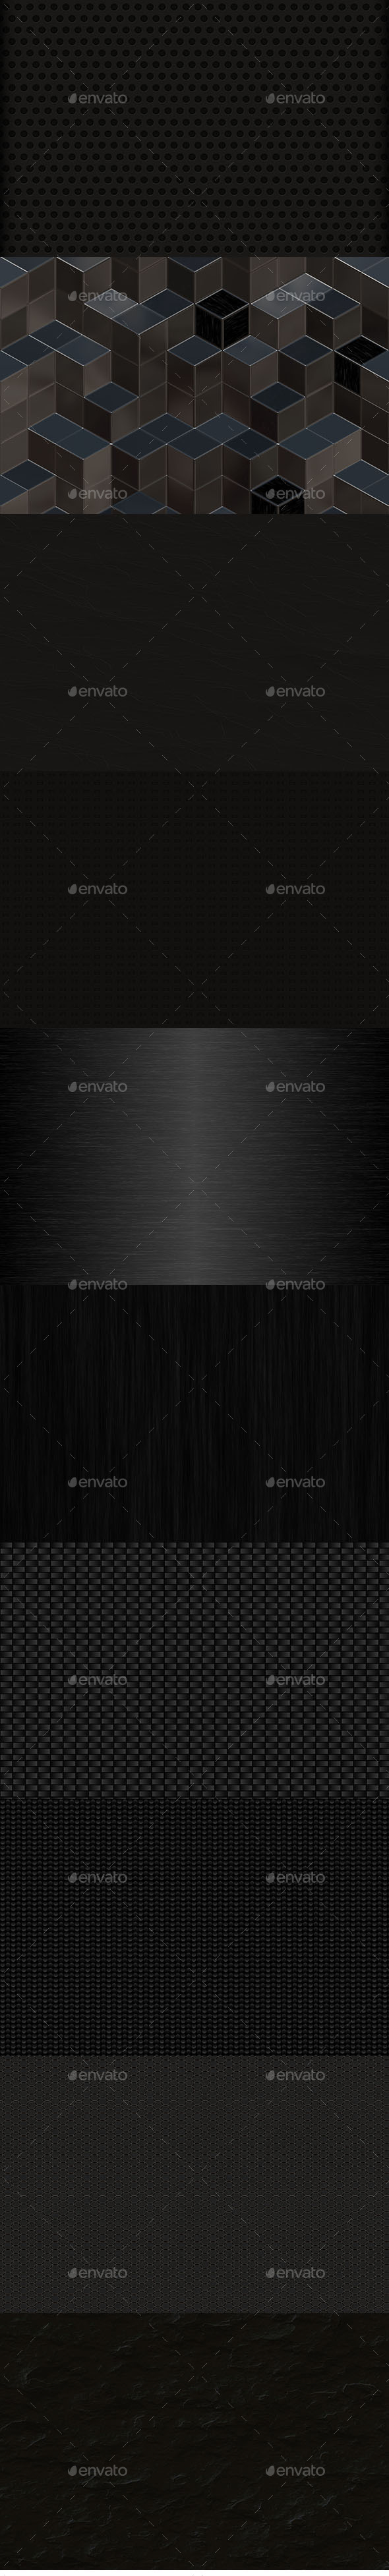 Black Backgrounds - Backgrounds Graphics